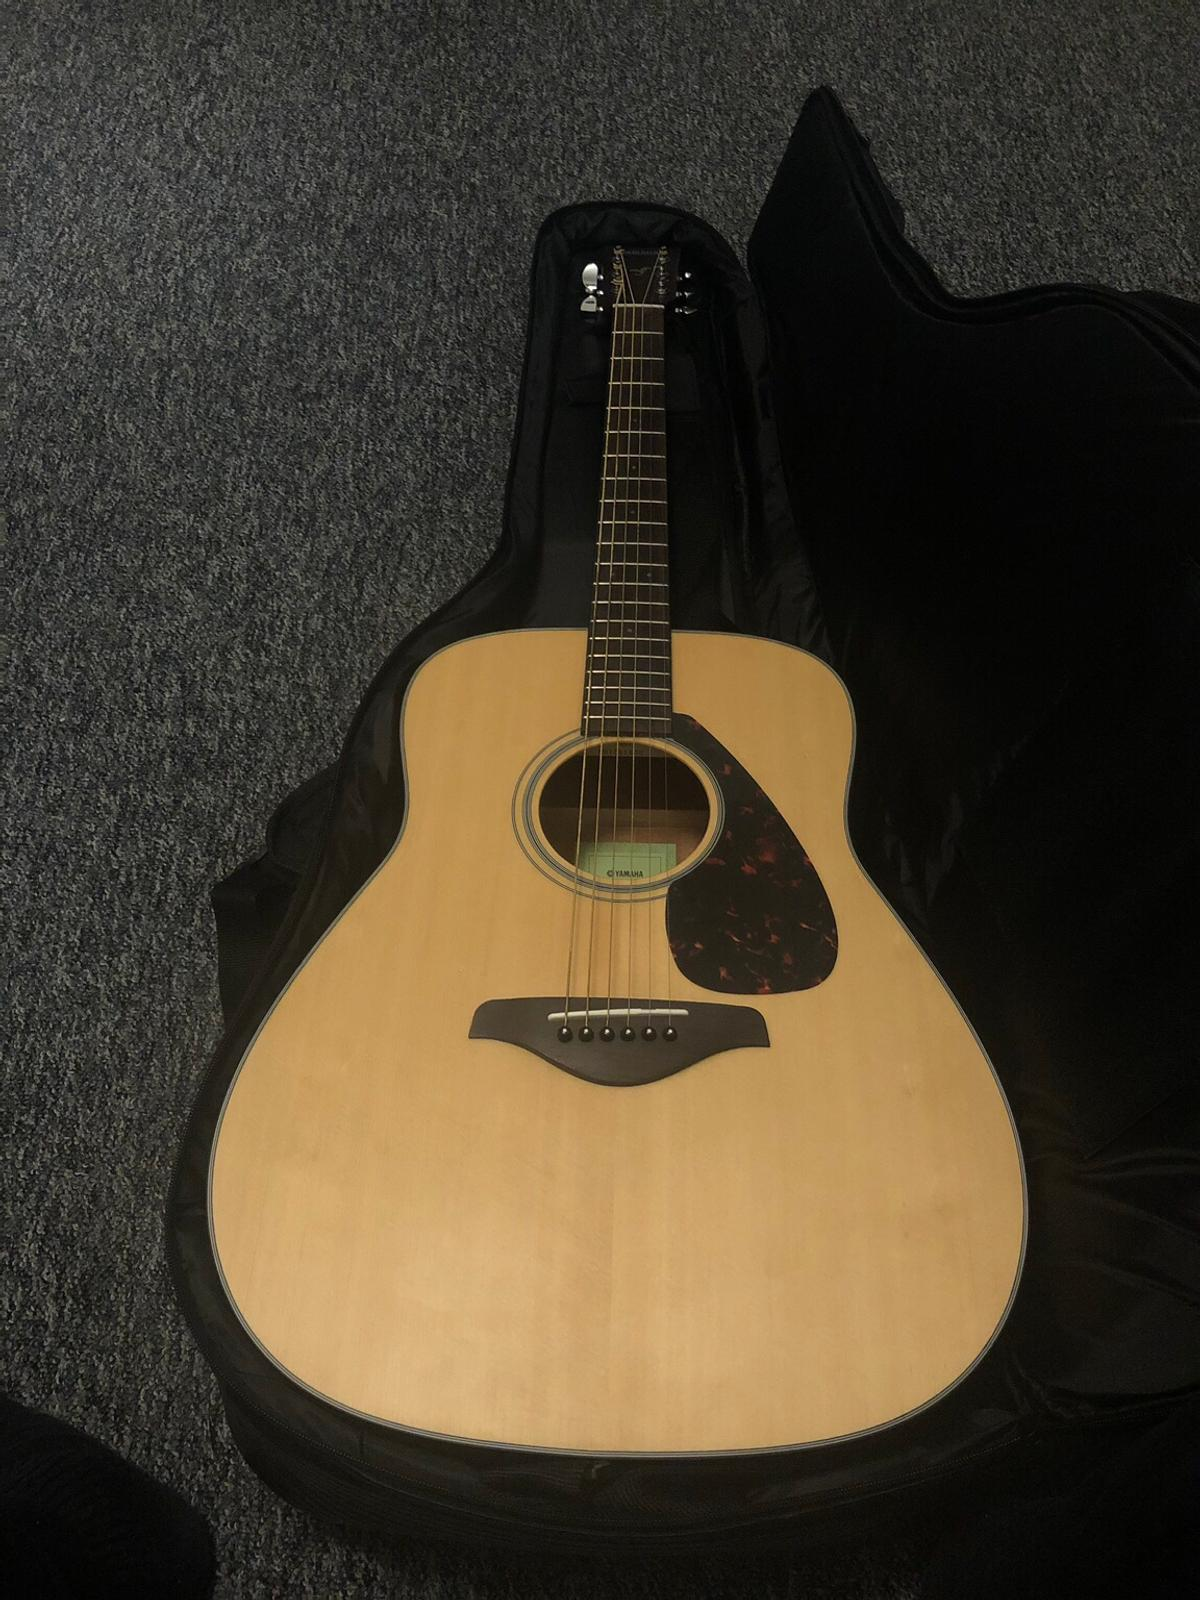 Guitar Yamaha Fg800 In London For 10000 For Sale Shpock